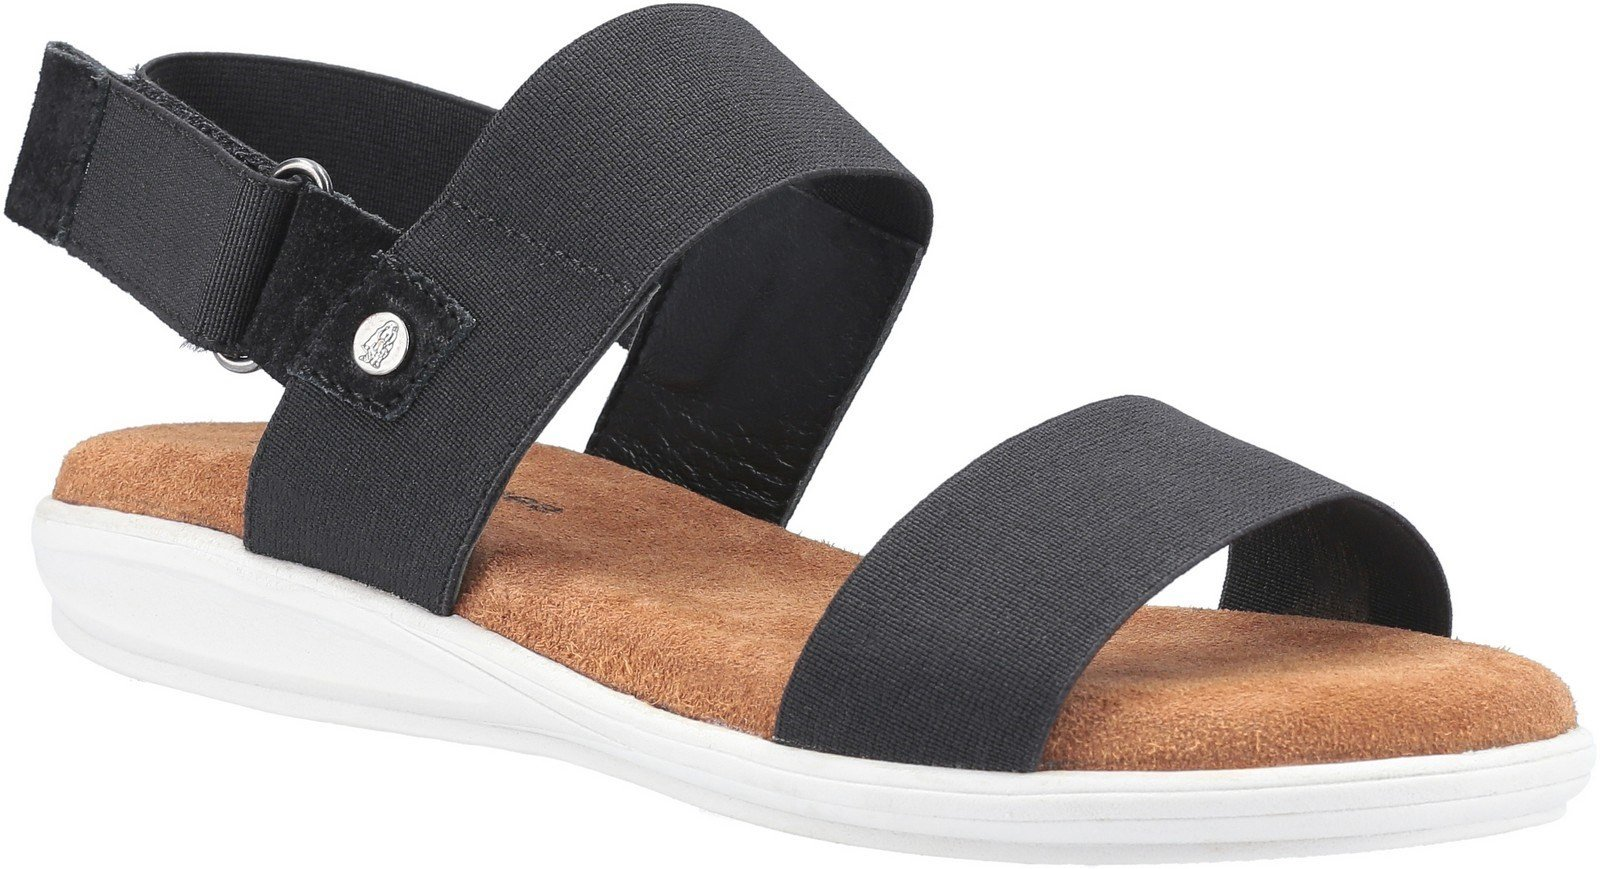 Hush Puppies Women's Ashley Touch Fastening Strap Sandal Various Colours 30218 - Black 3